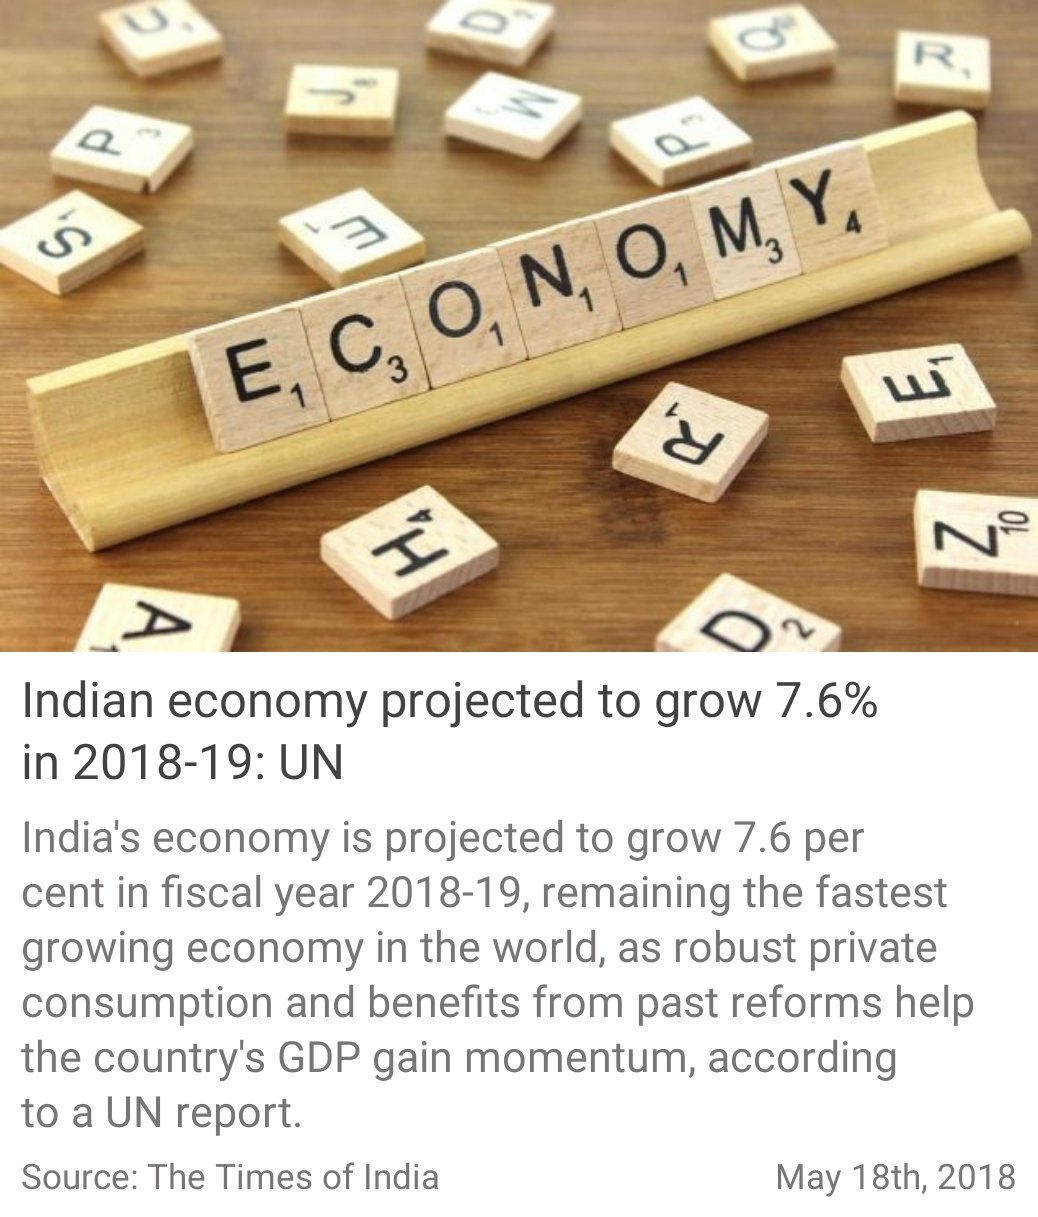 Indian economy projected to grow 7.6% in 2018-19: UN https://t.co/4ybGVSUv7k #IamNewIndia via NMApp https://t.co/Rsh4KRiYyB